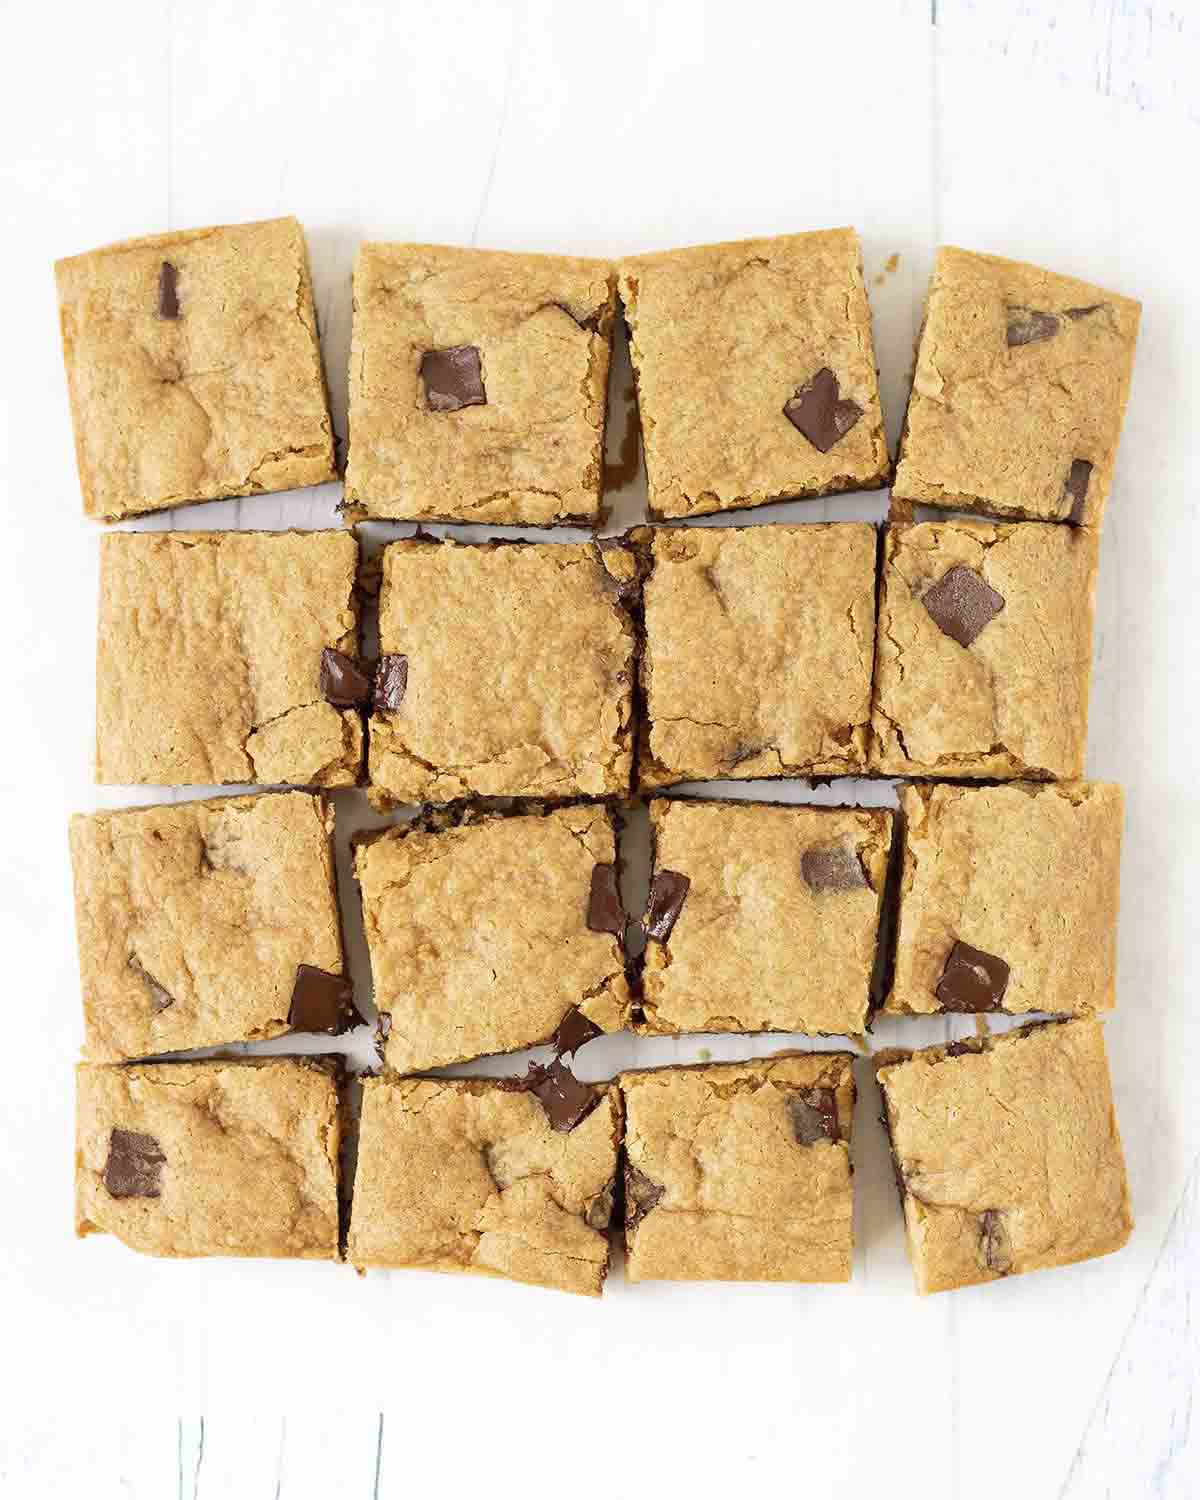 An overhead shot showing a batch of freshly baked and sliced vegan blondies on a table.